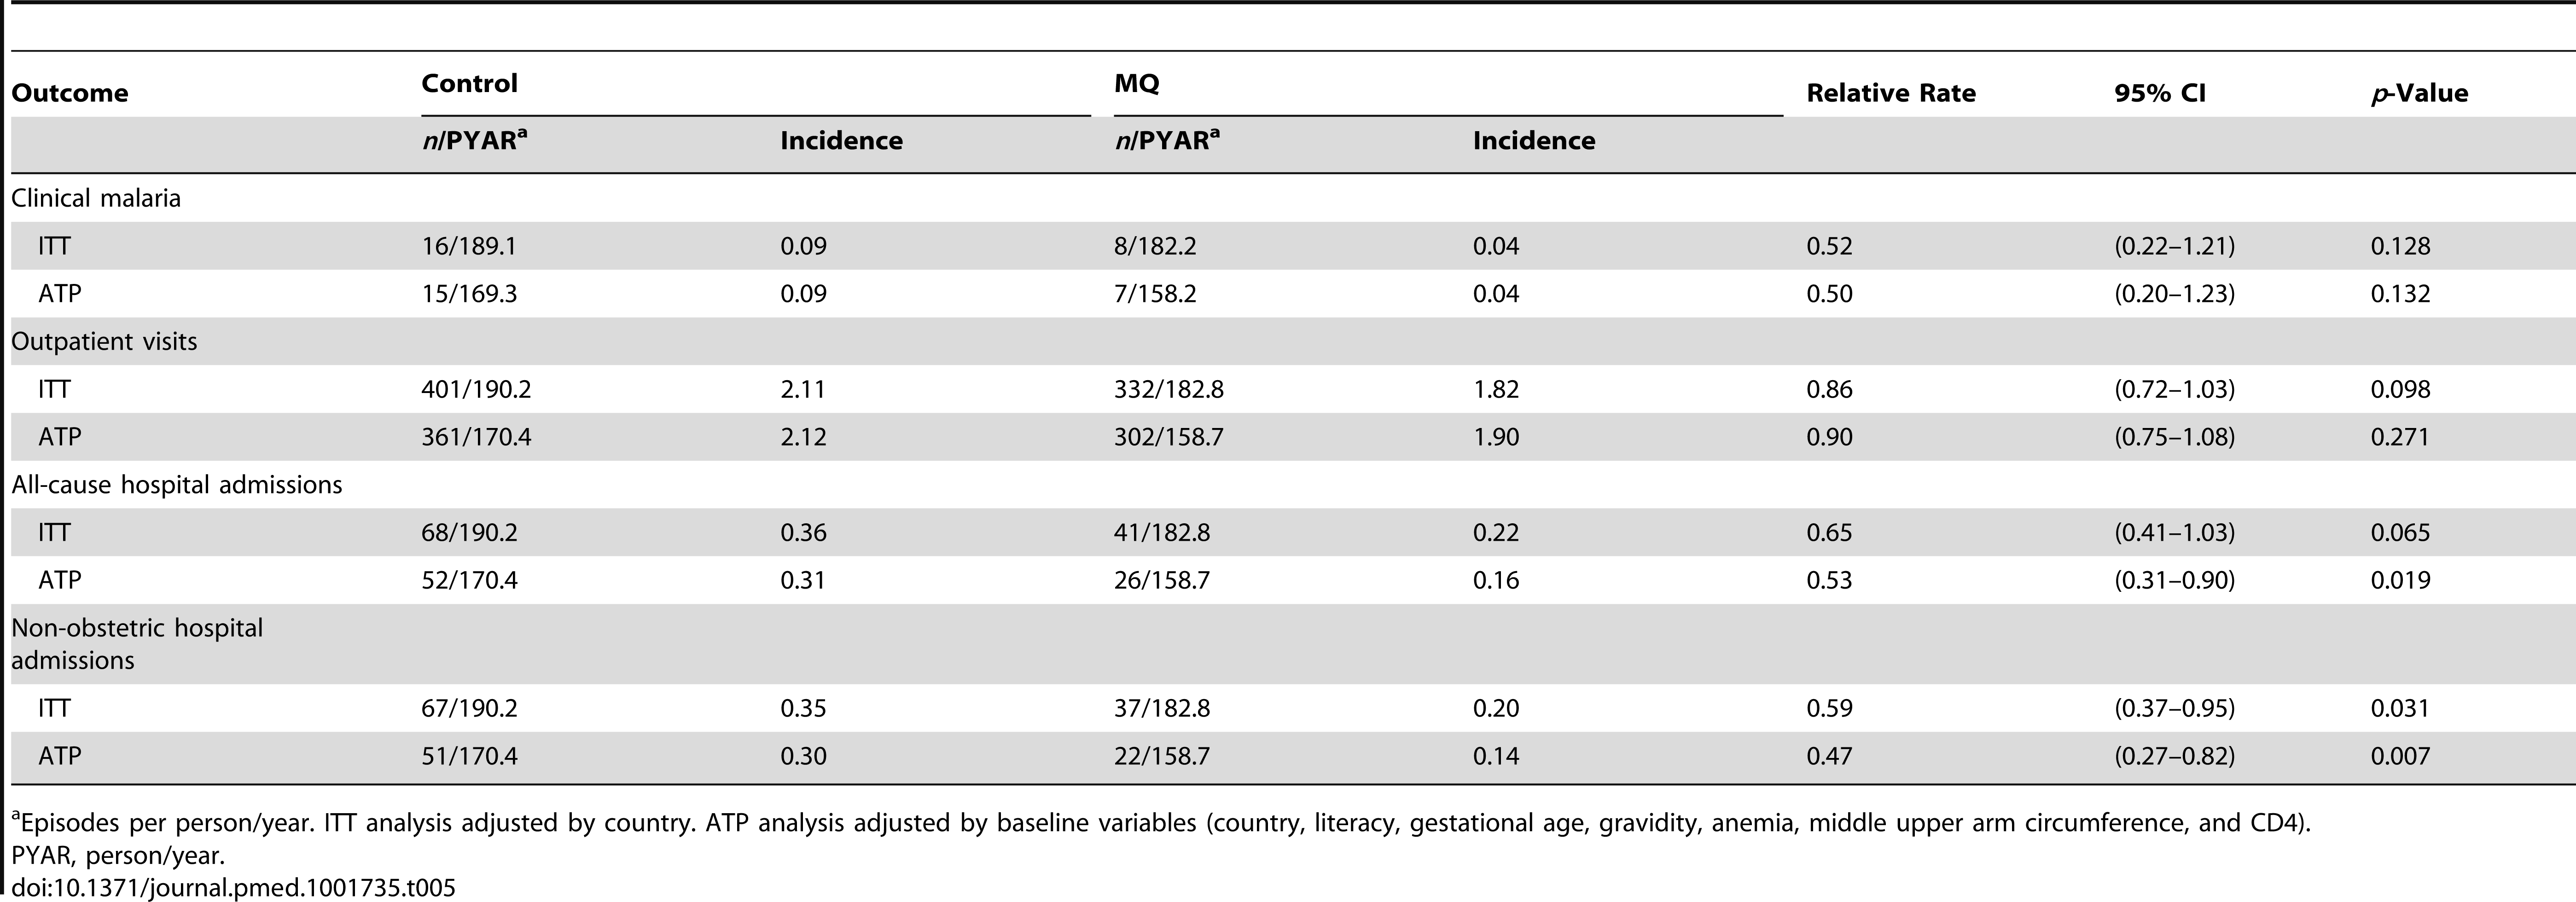 Incidence of clinical malaria, outpatient visits, and hospital admissions.